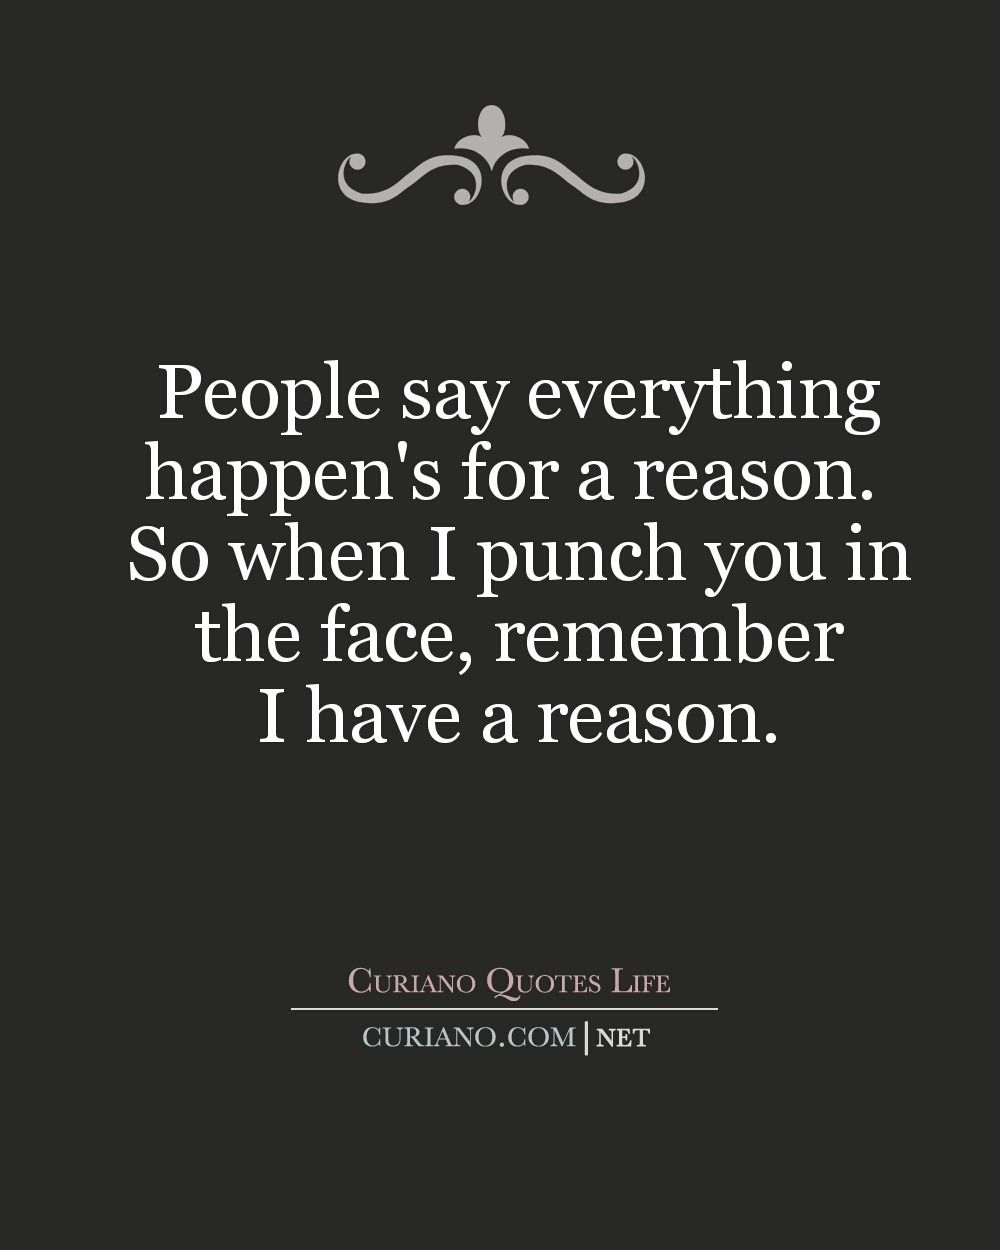 Quotes About Life And Love And Lessons This Blog Curiano Quotes Life Shows Quotes Best Life Quote